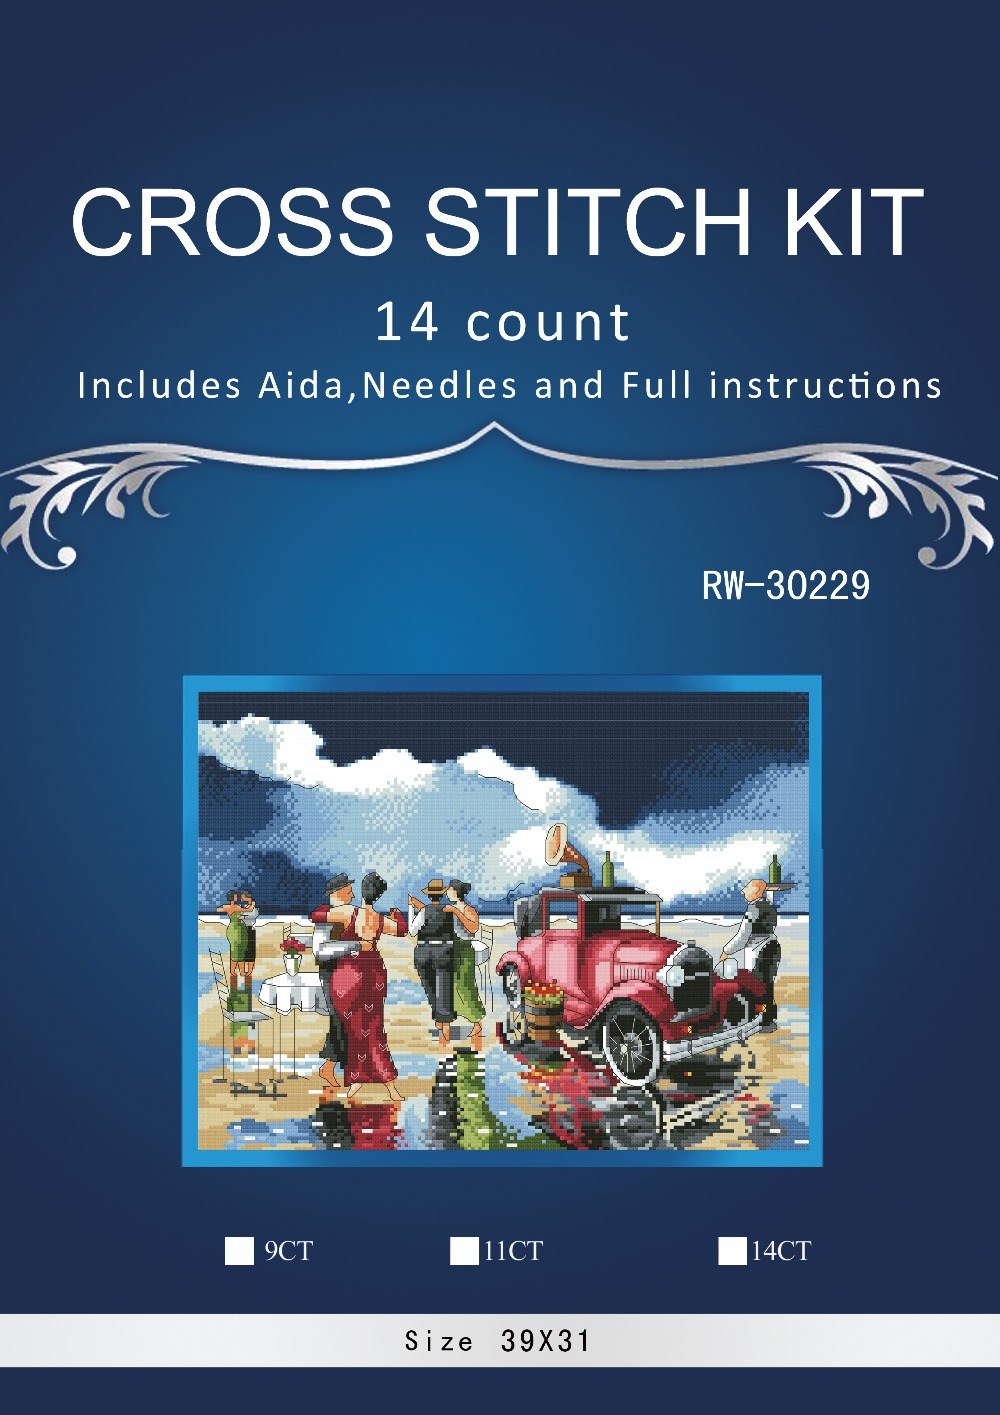 Cross-stitch Arts,crafts & Sewing Free Delivery Top Quality Lovely Counted Cross Stitch Kit Memories On Ice Skate Skating Winter Snow Moderate Cost